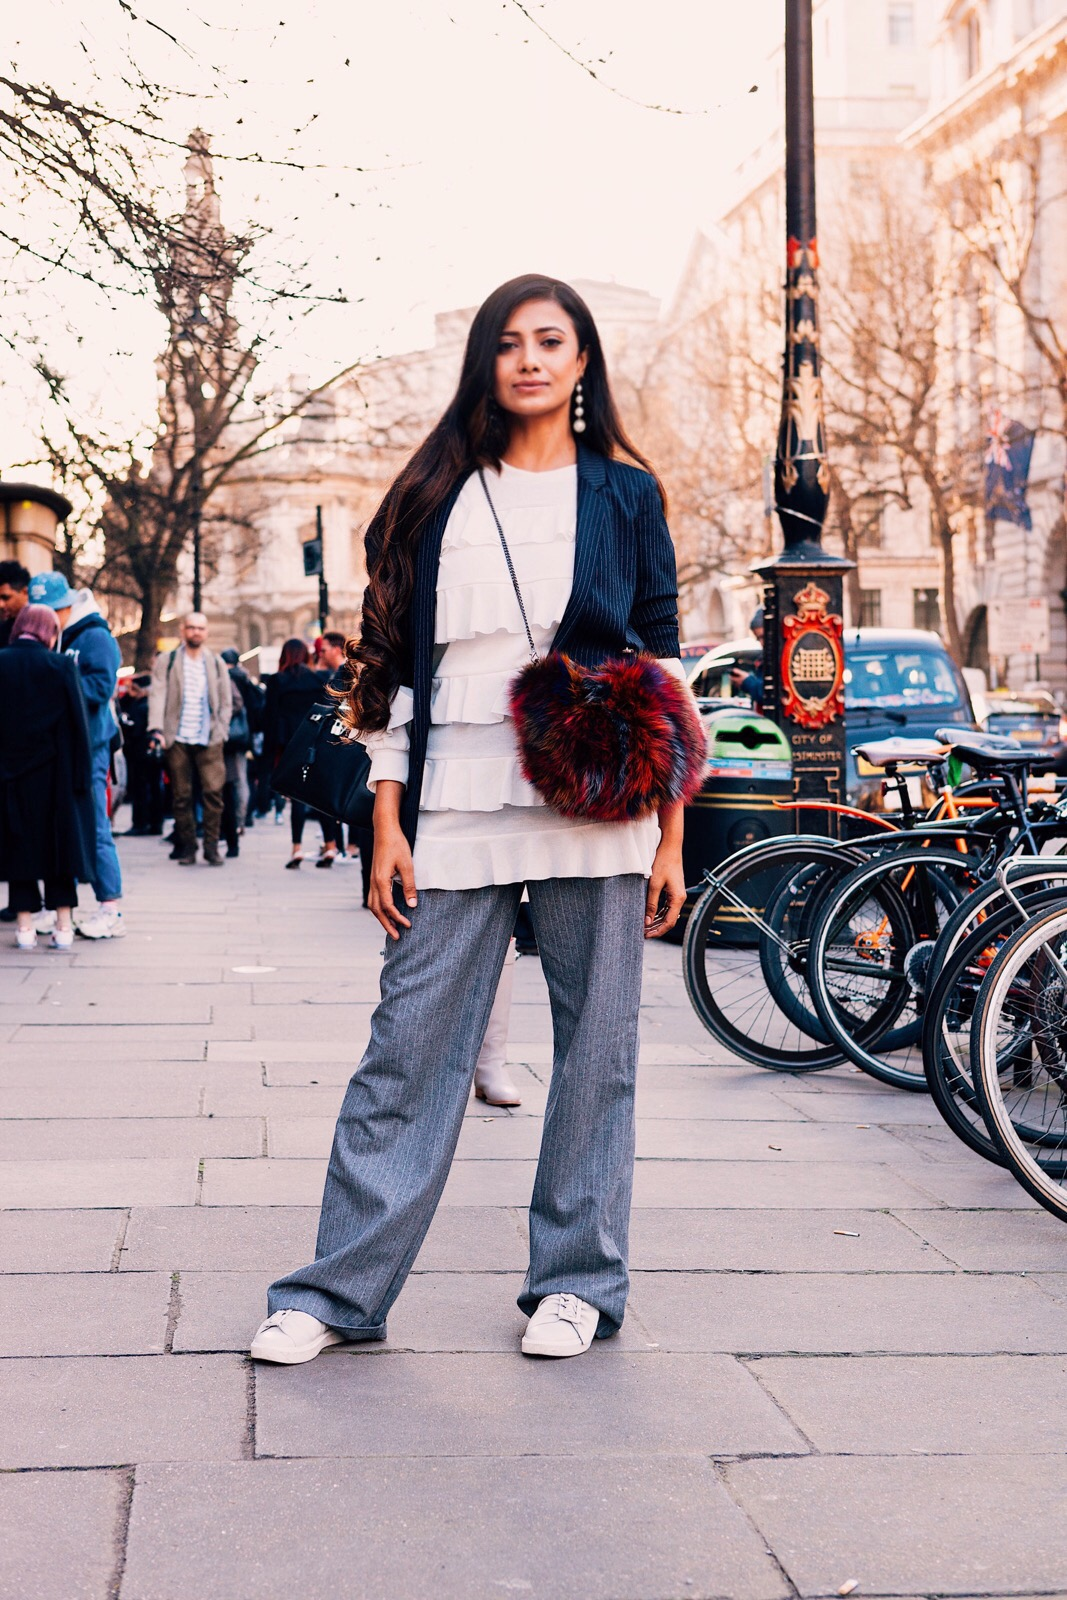 parisian style,lfw, london fashion week, london fashion week street style, lfw aw17, lfw blogger outfit, london fashion week blogger outfit, london fashion week aw17 blogger, top lfw street style, lfwxltk, vva, vva review, fur bag, hand warmer bag, relaxed street style, top lfw look, london street style, fashion week fw17, 2017 london fashion week, lfw aw17 day 1, lfw aw17 street style, lfw aw17 top blogger outfit, london fashion week aw17 day 1, uk blog, top indian blog, scandinavian fashion, style fashion week, what to wear to fashion week, style ruffles, style wide leg pants, casual blazer, weekend outfit, european style